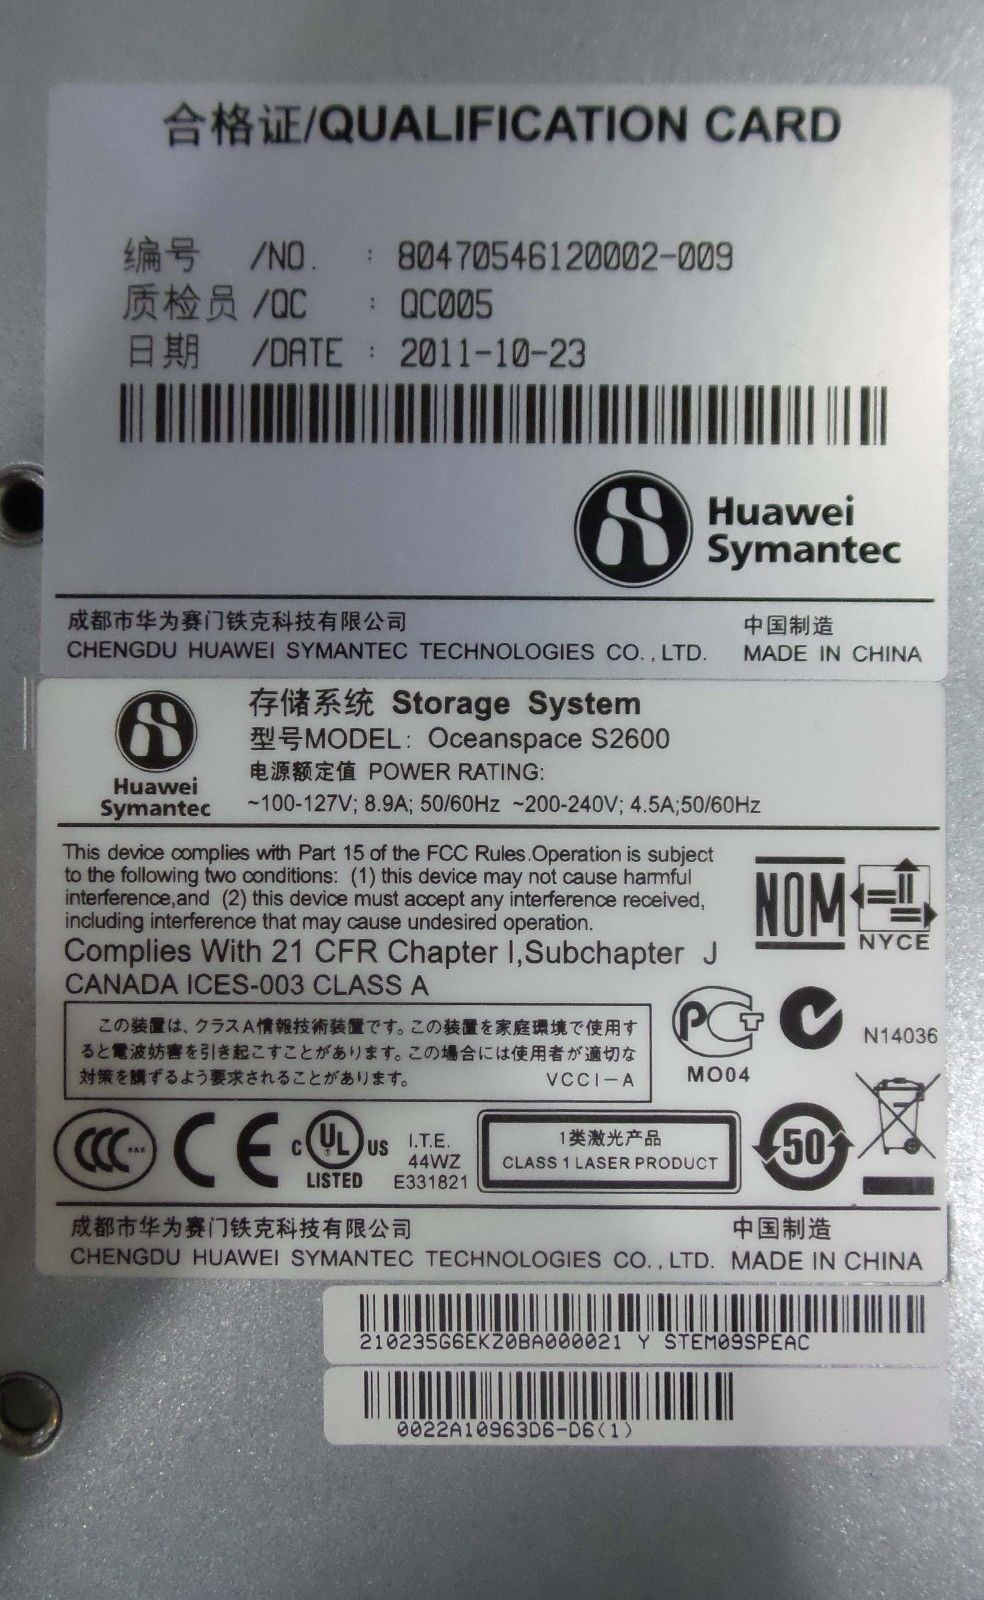 Huawei Storage Symantec Oceanspace S2600 12x 2TB 0231G520 + software + license_7